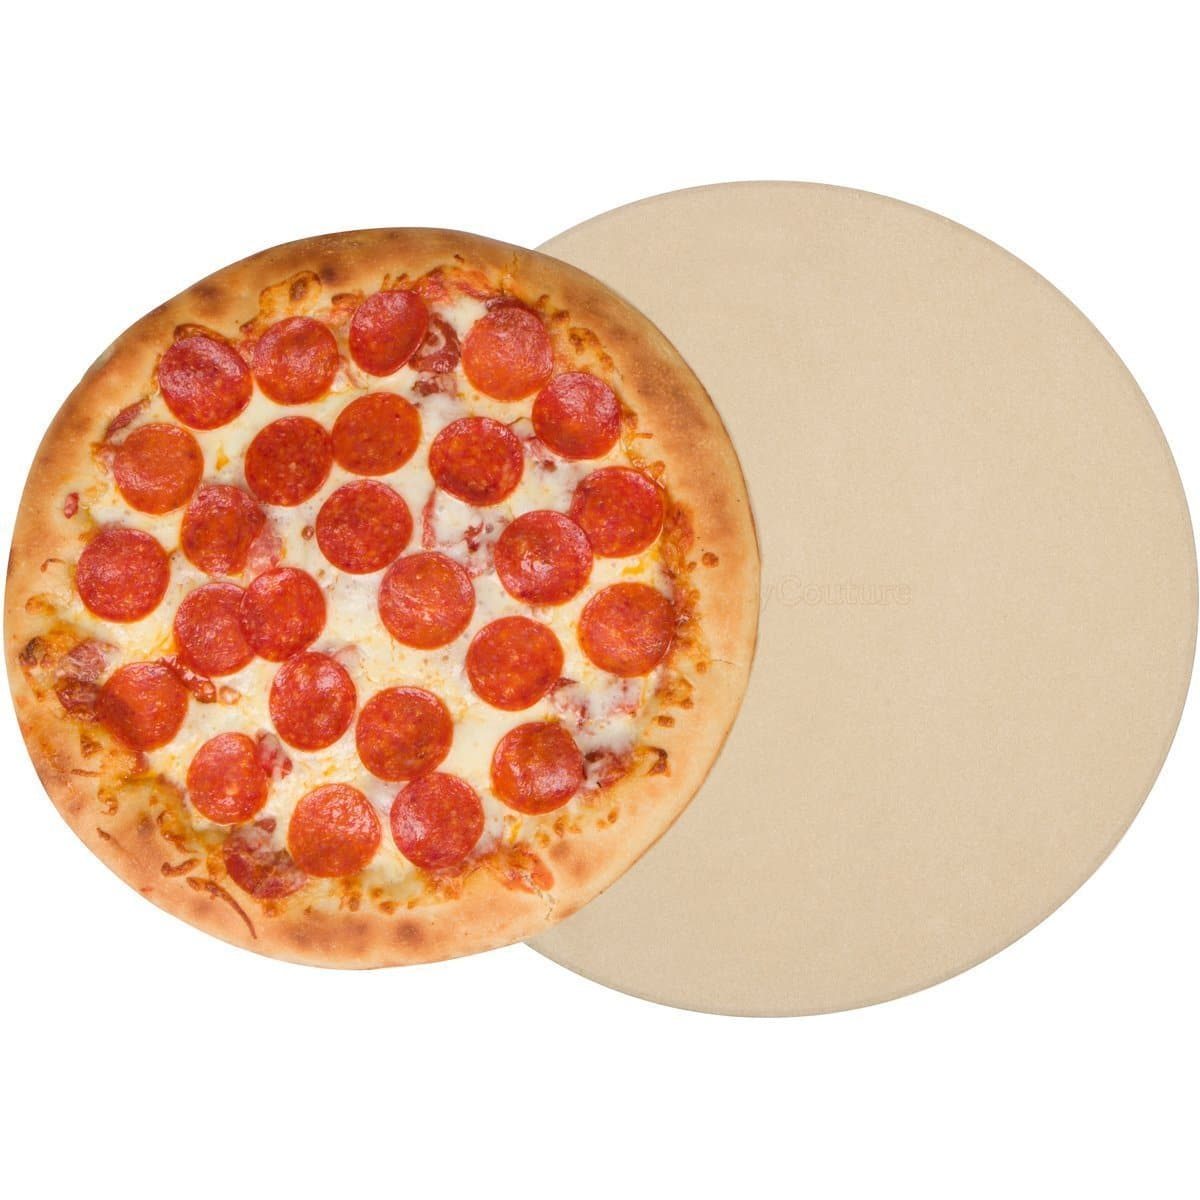 "Pizza Stone  - 15 Inch 3/4"" Extra Thick Cordierite - $33 @ Amazon Lightning Deal"